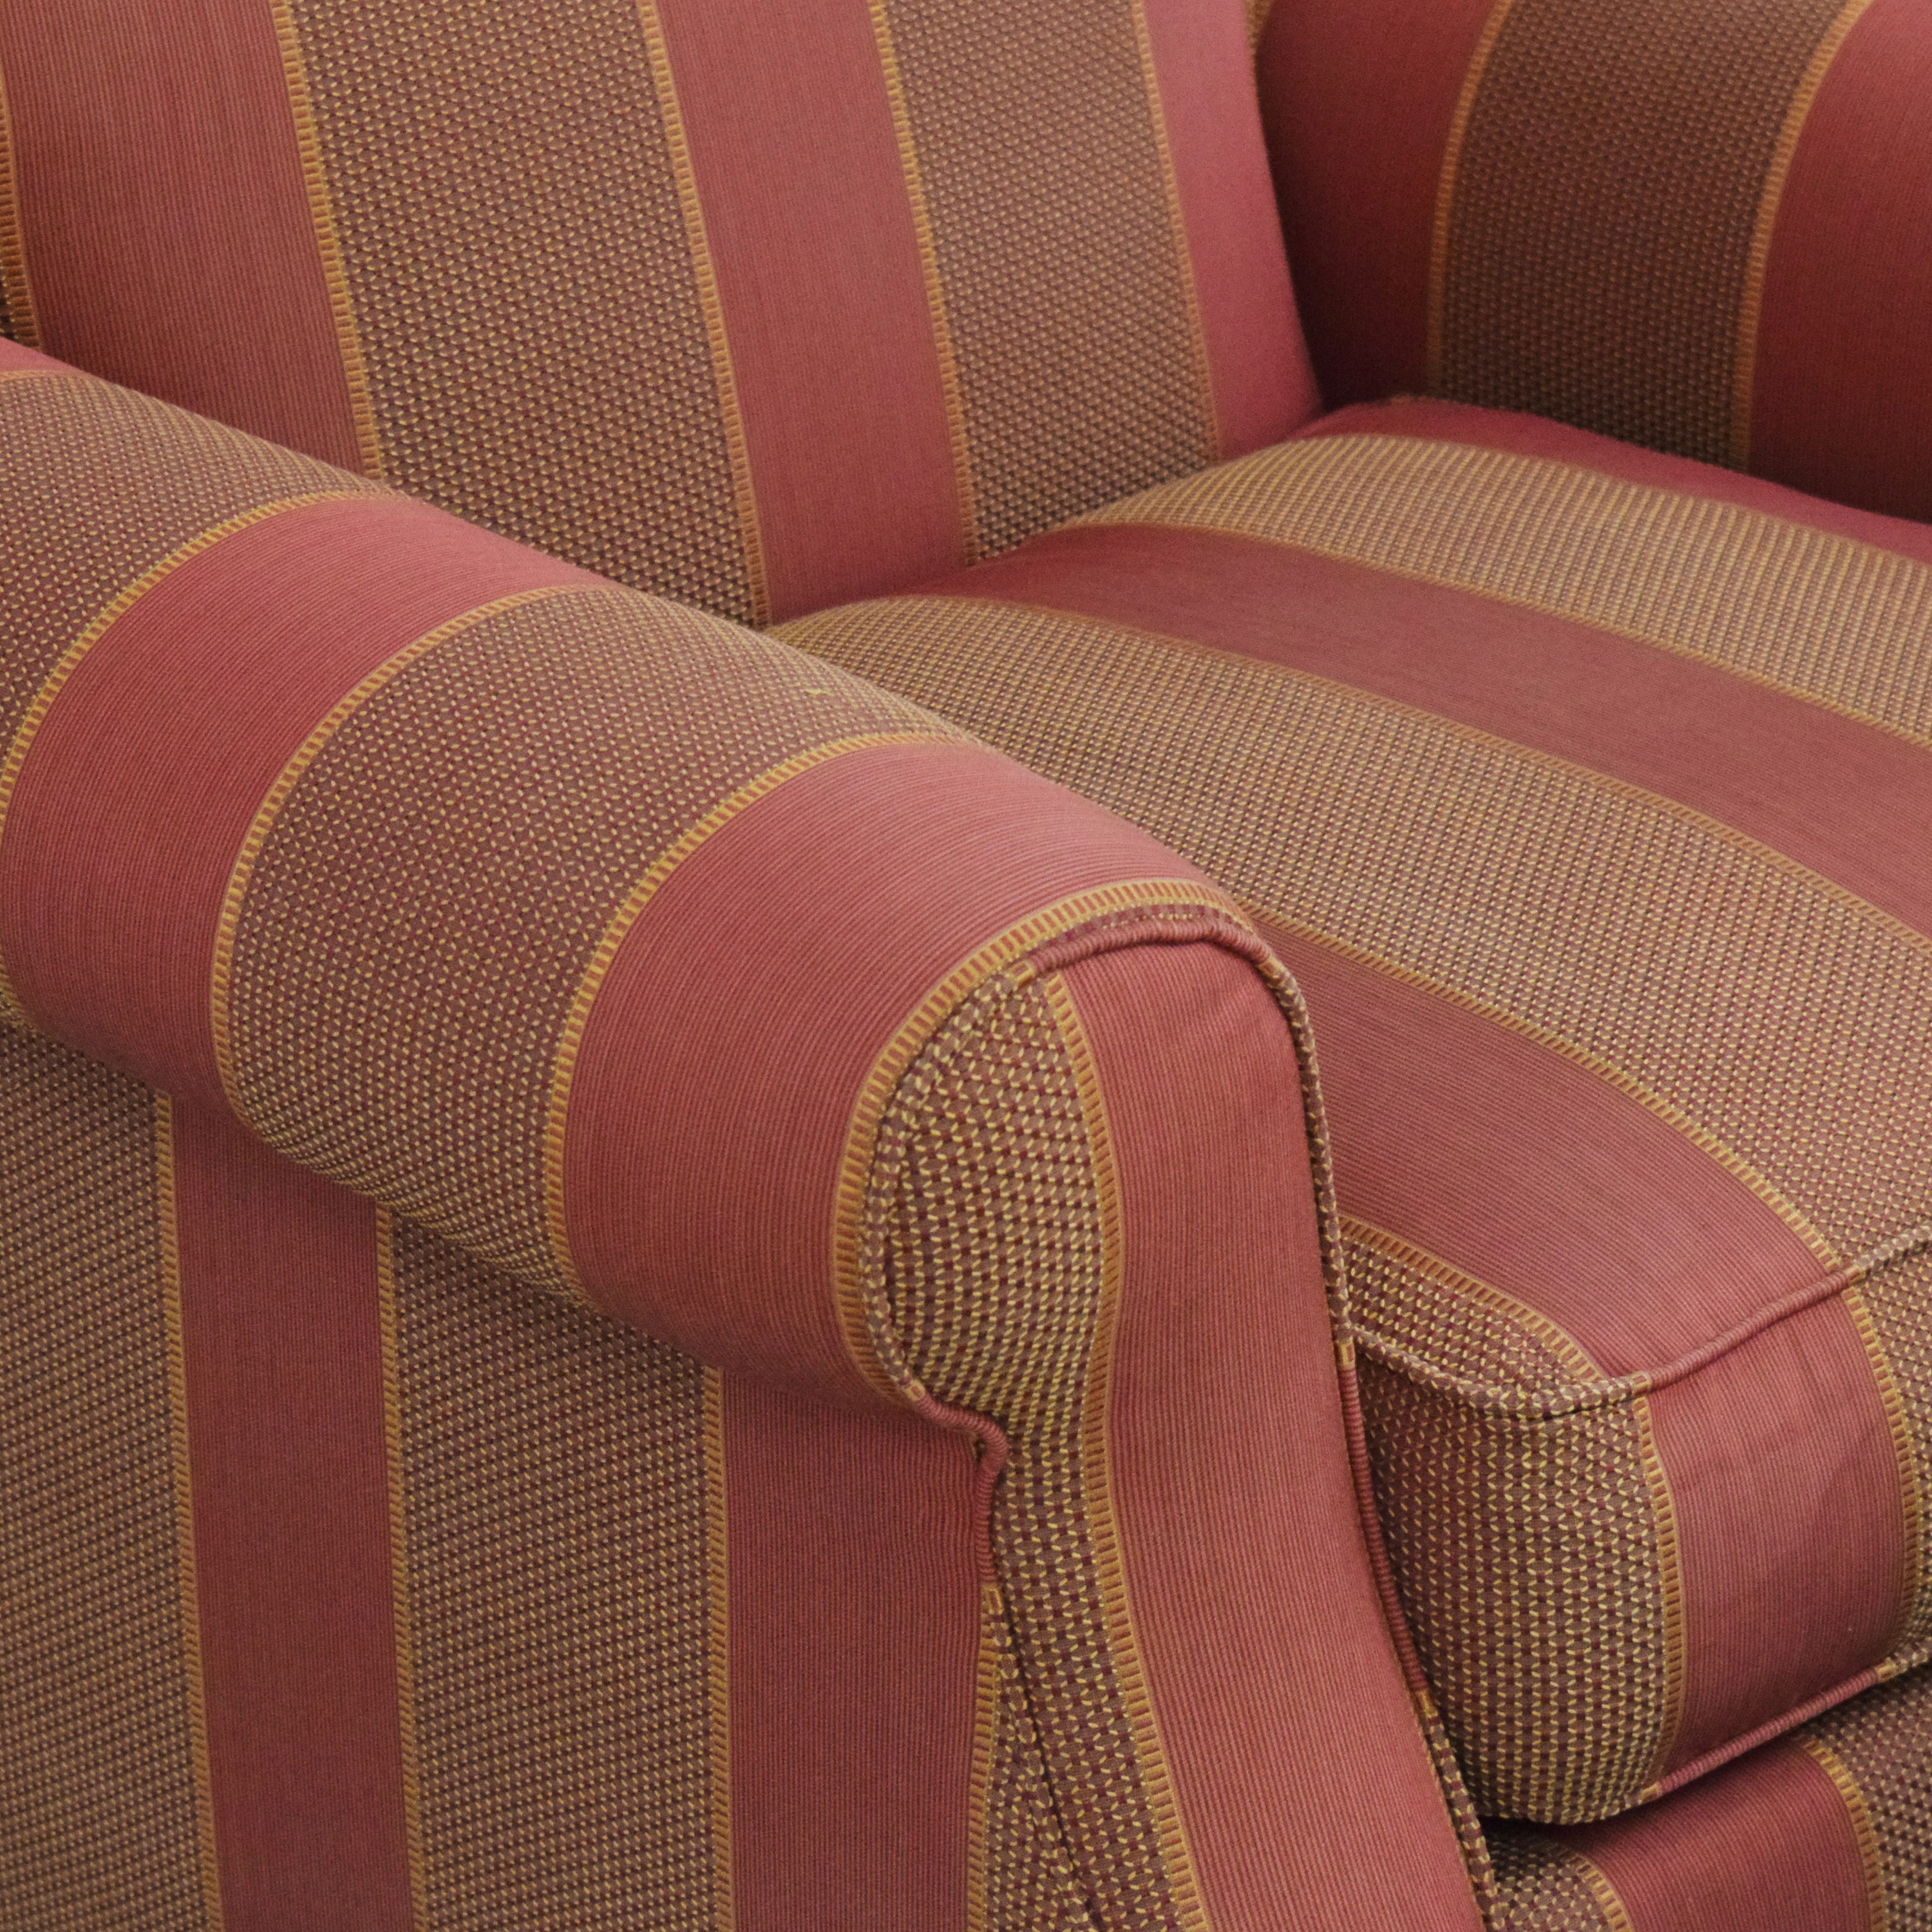 buy Grange Striped Chair with Ottoman Grange Chairs